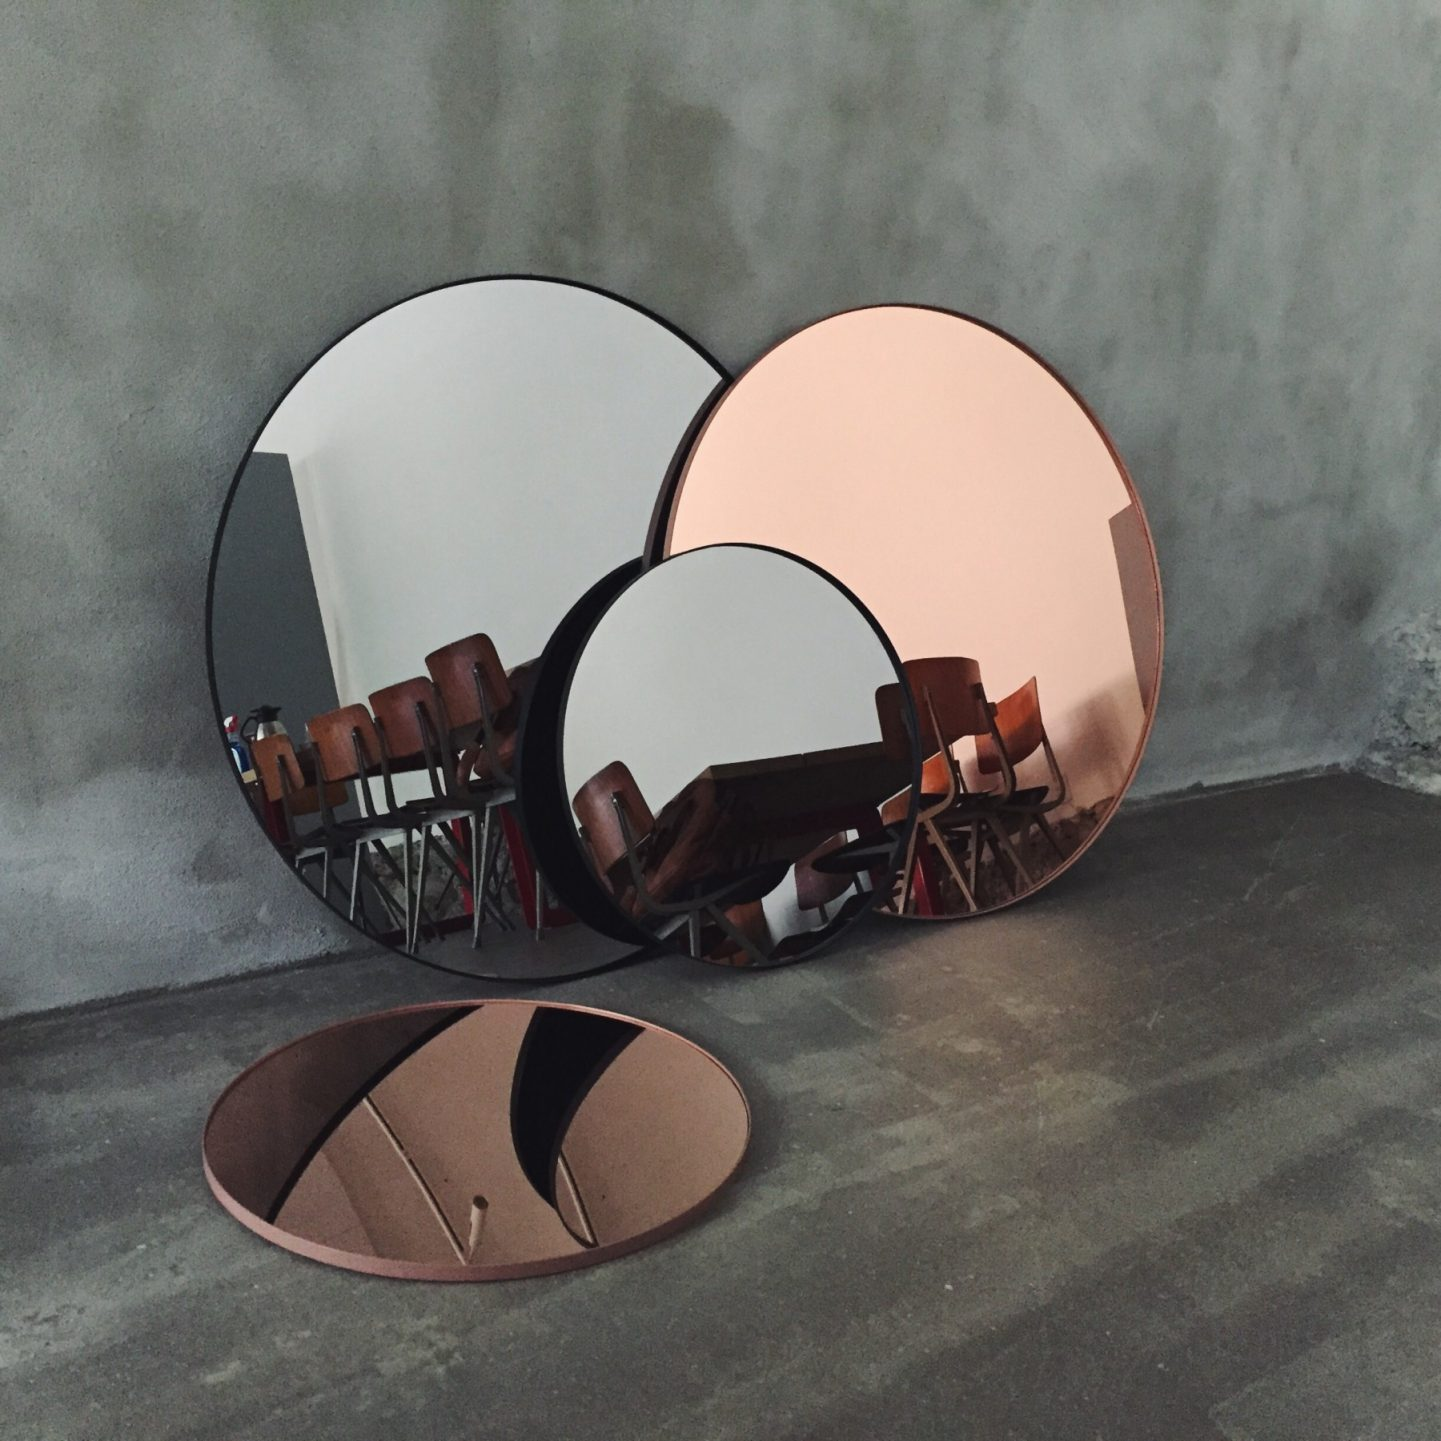 mirrors_all_together-2